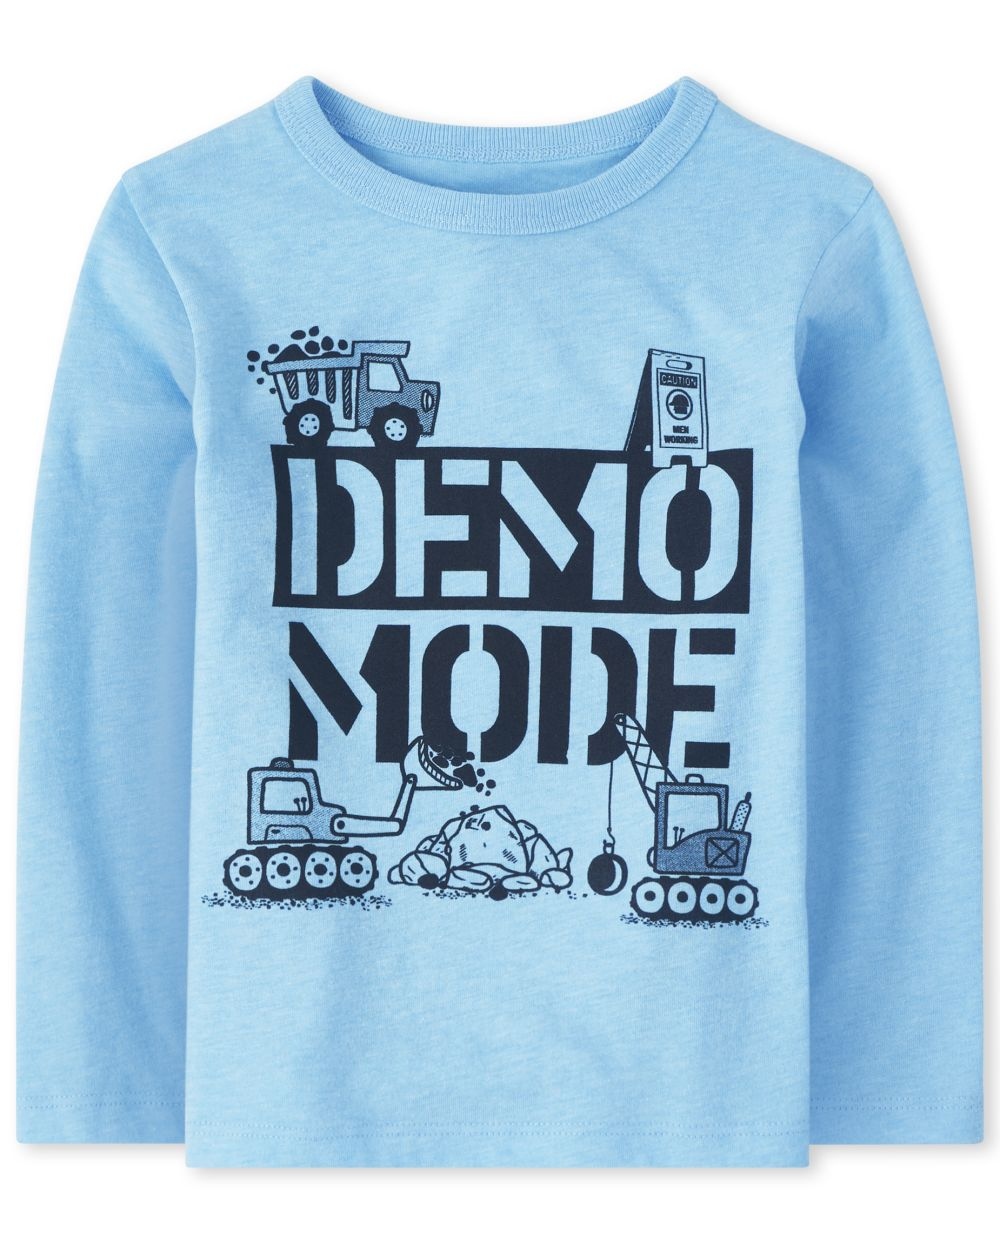 Baby And Toddler Boys Demo Mode Graphic Tee